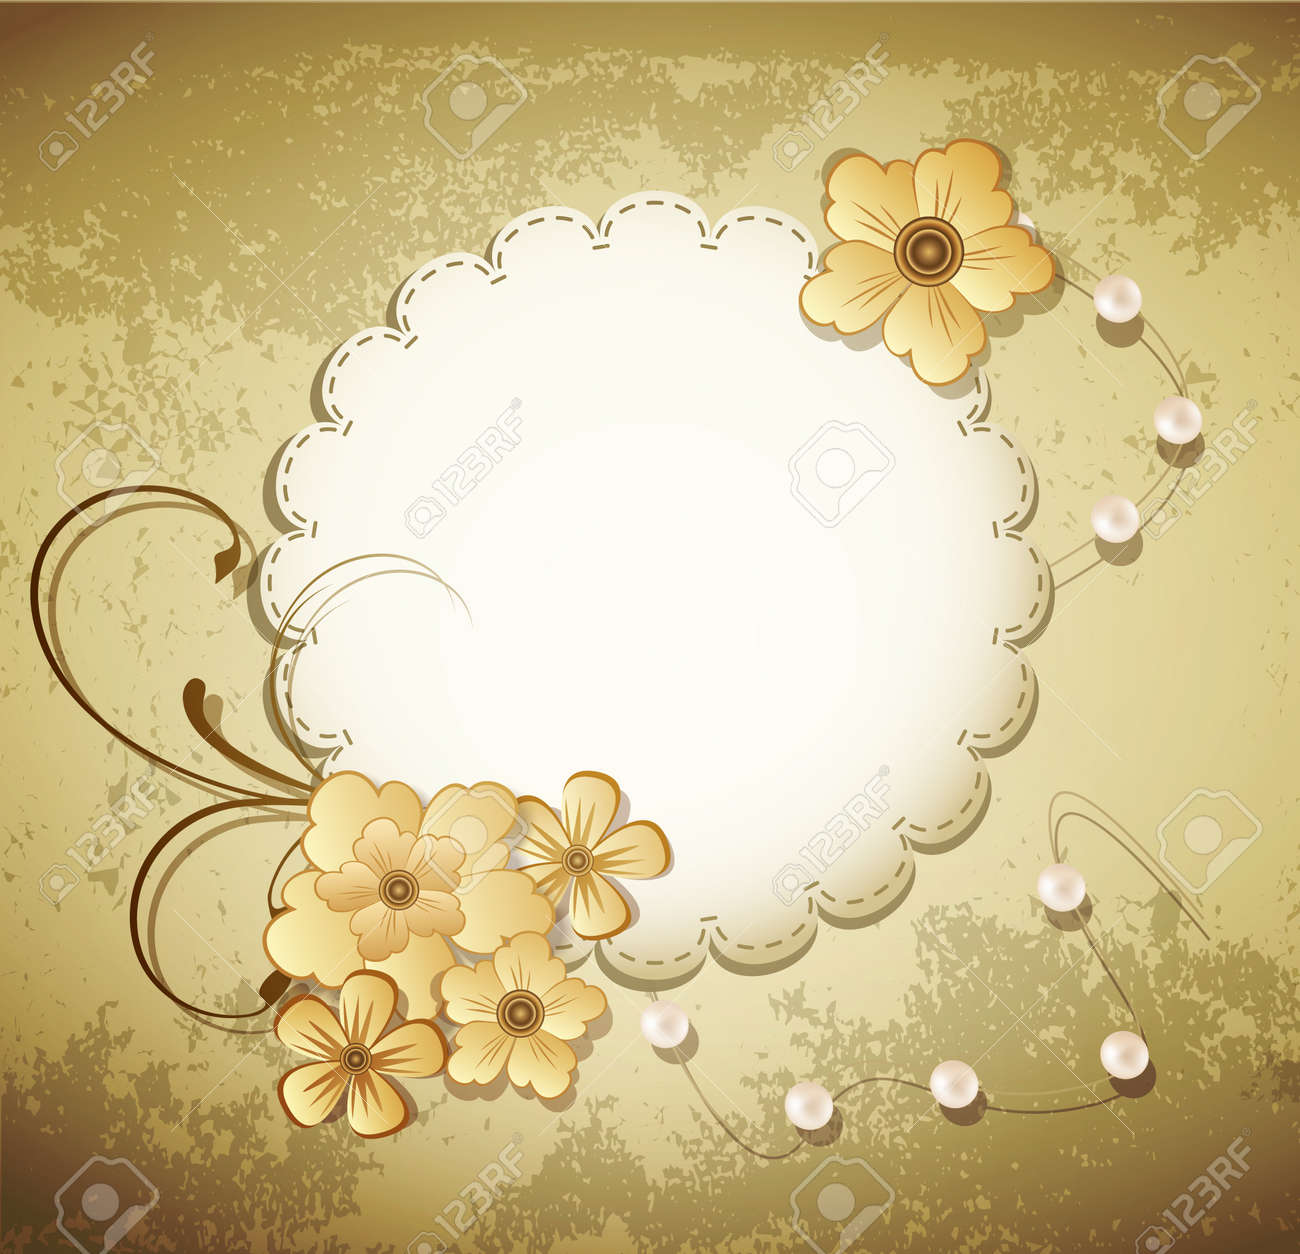 grunge, vintage background with a greeting card, pearls, flowers Stock Vector - 10049547